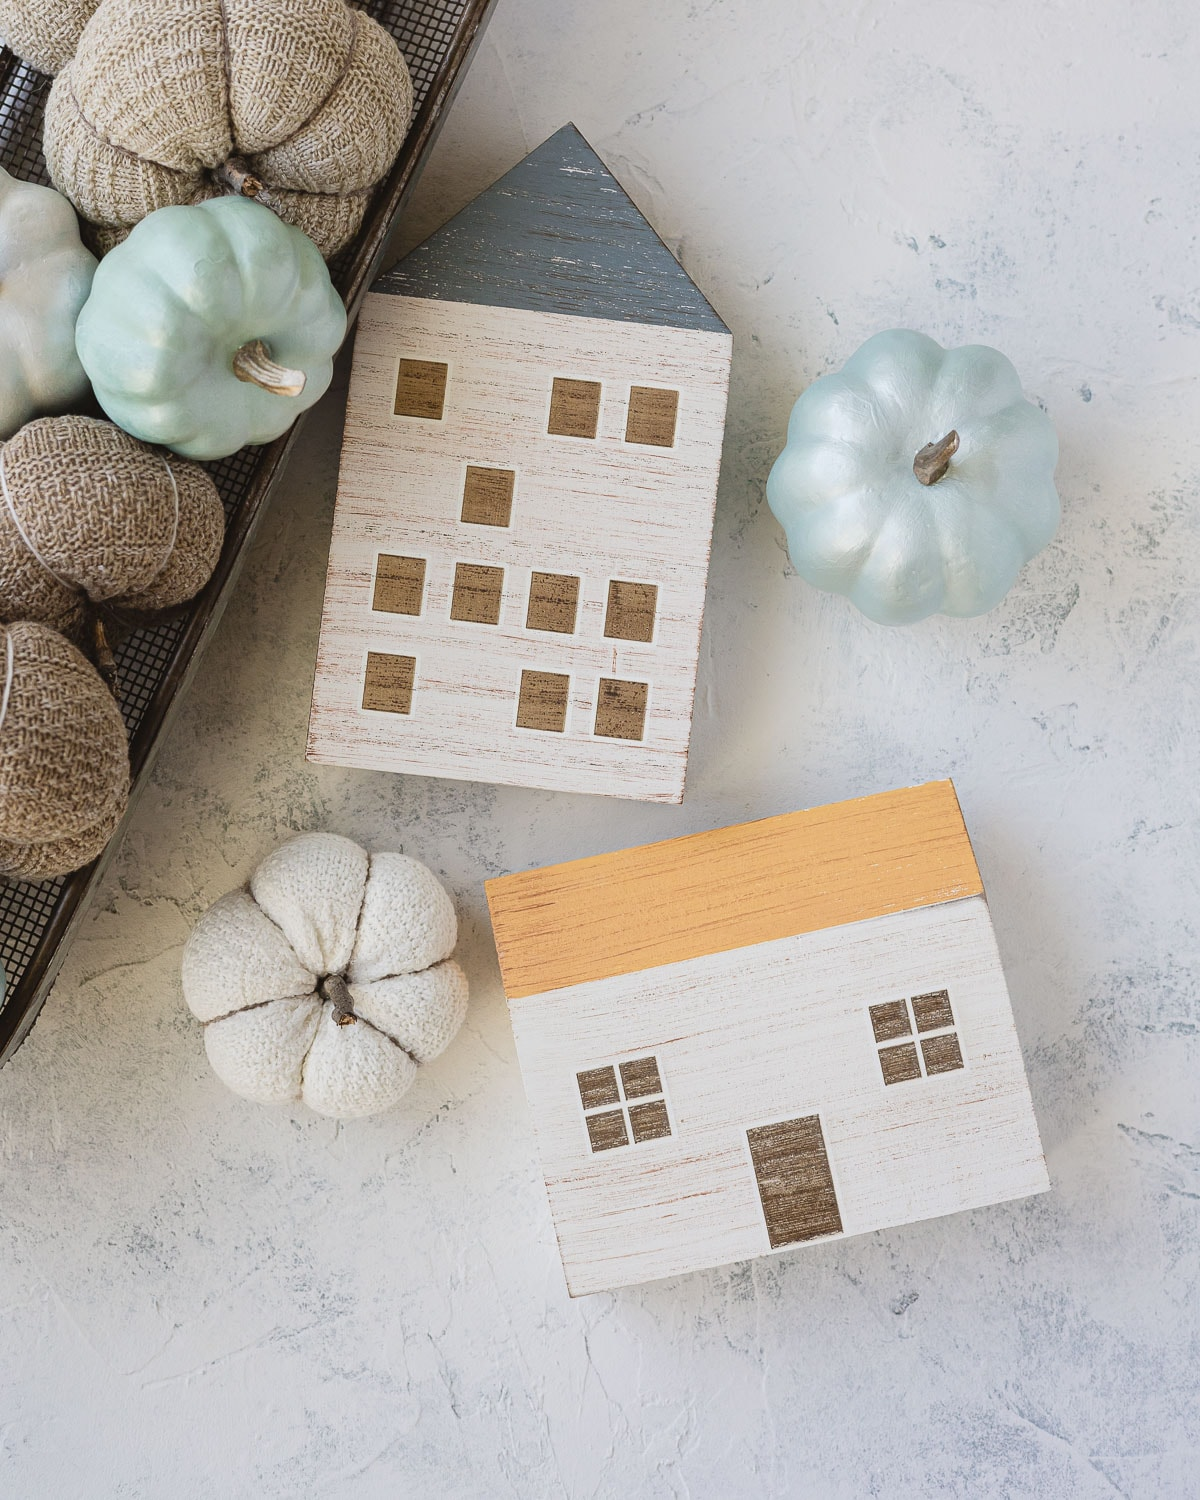 Painted wooden houses from Target and sock pumpkins.